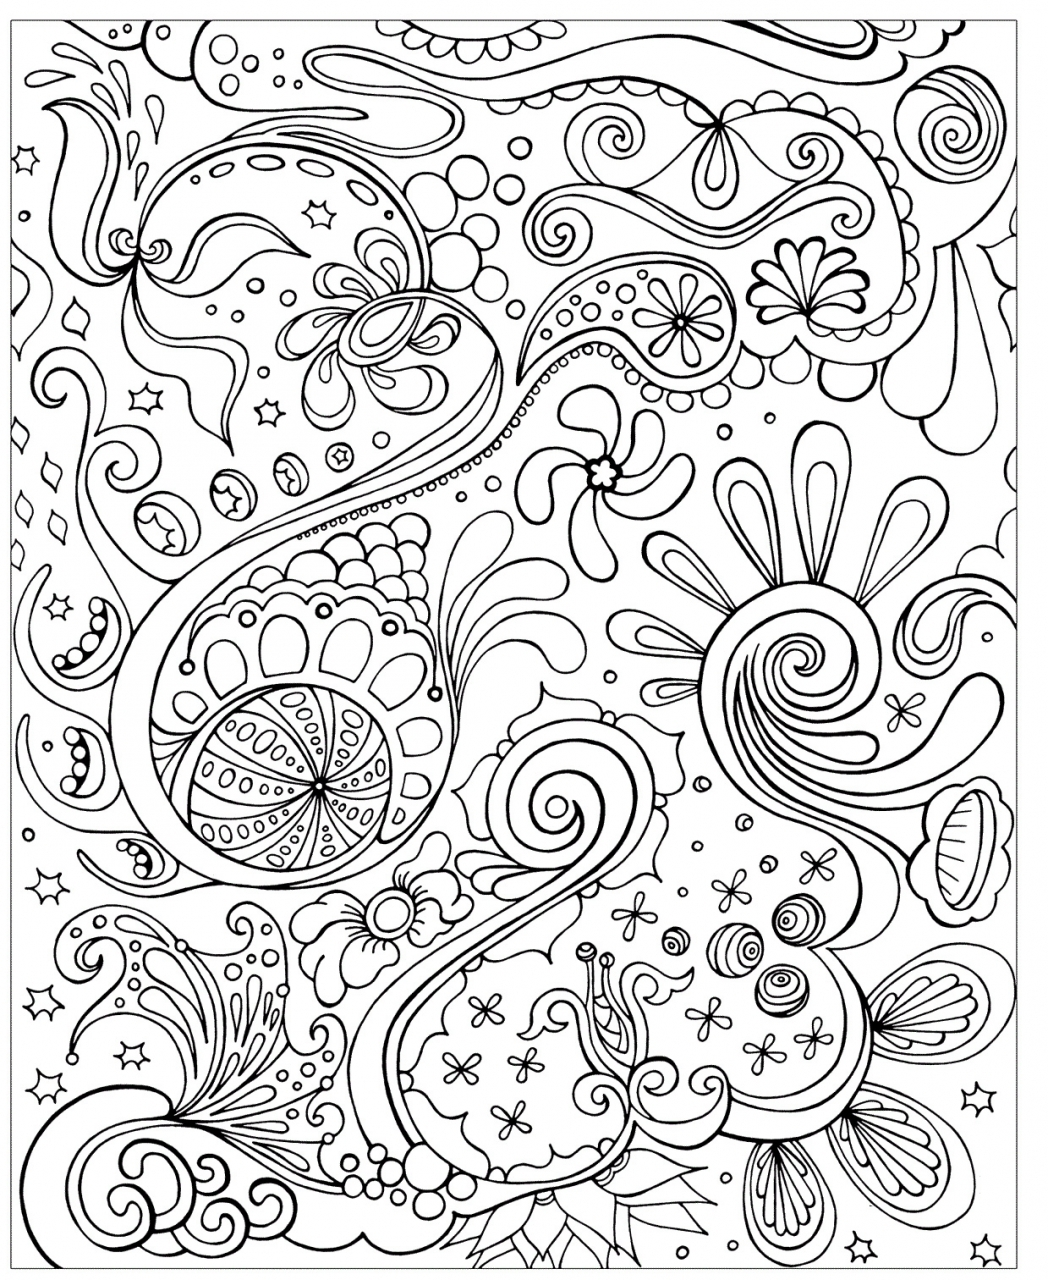 20 free printable space coloring pages for adults